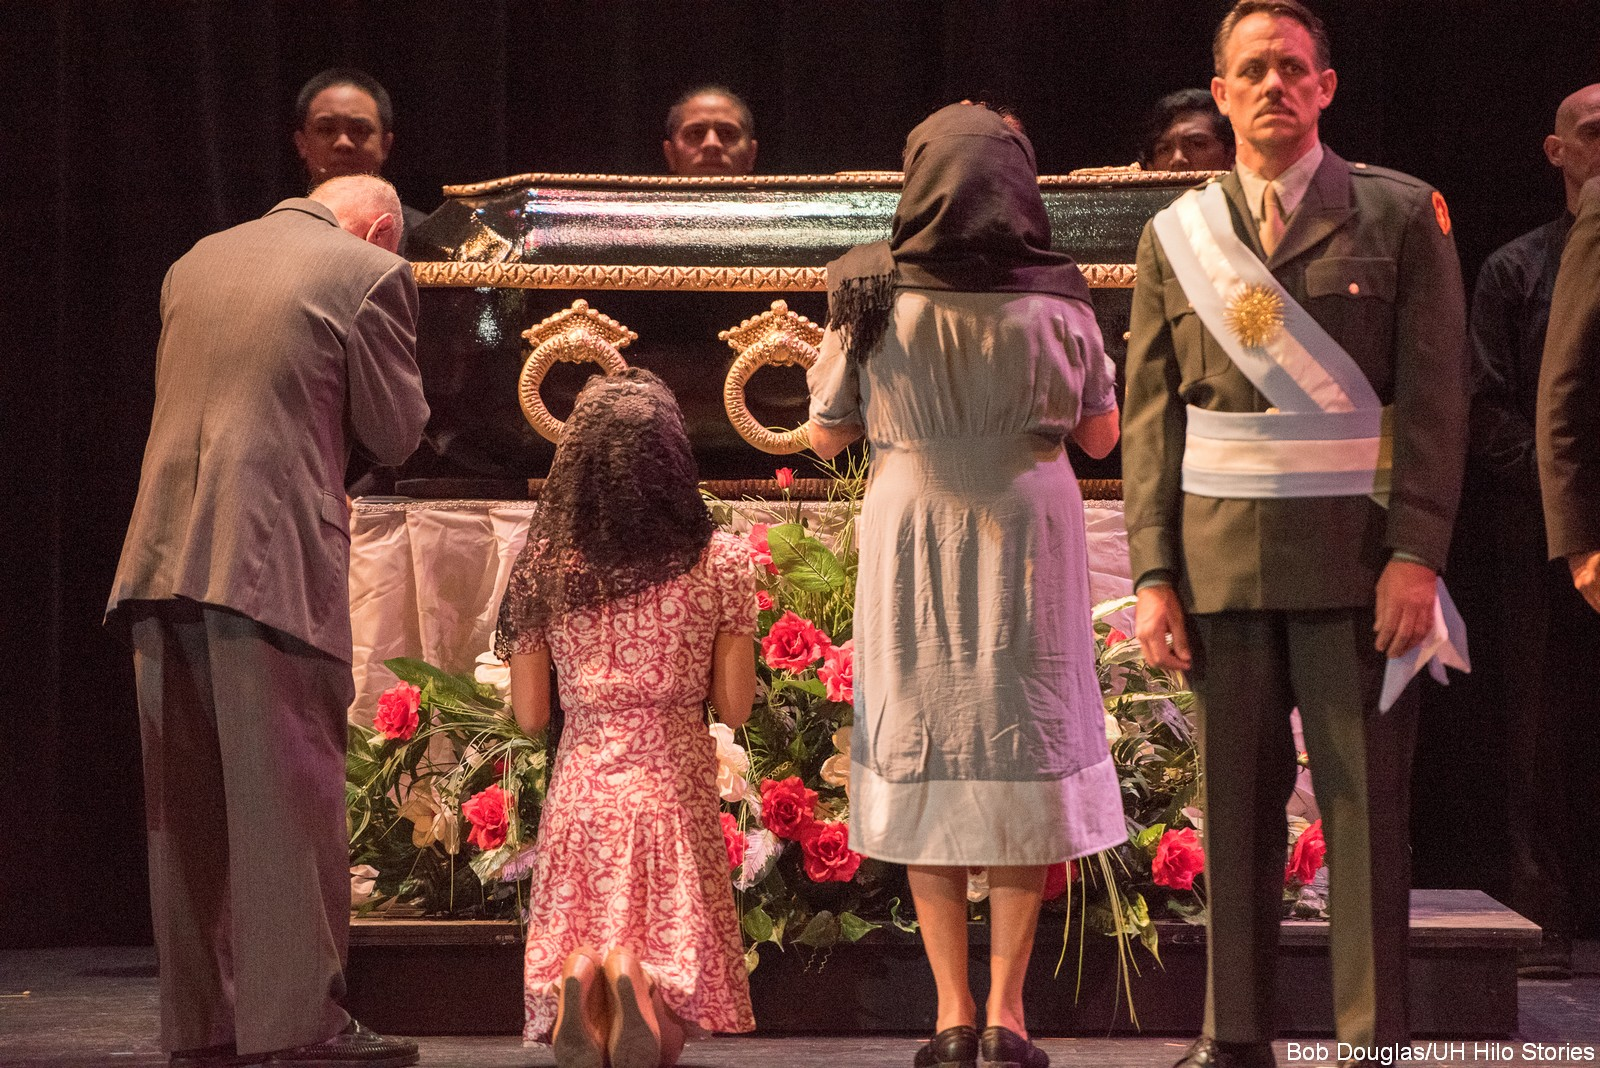 Group with casket